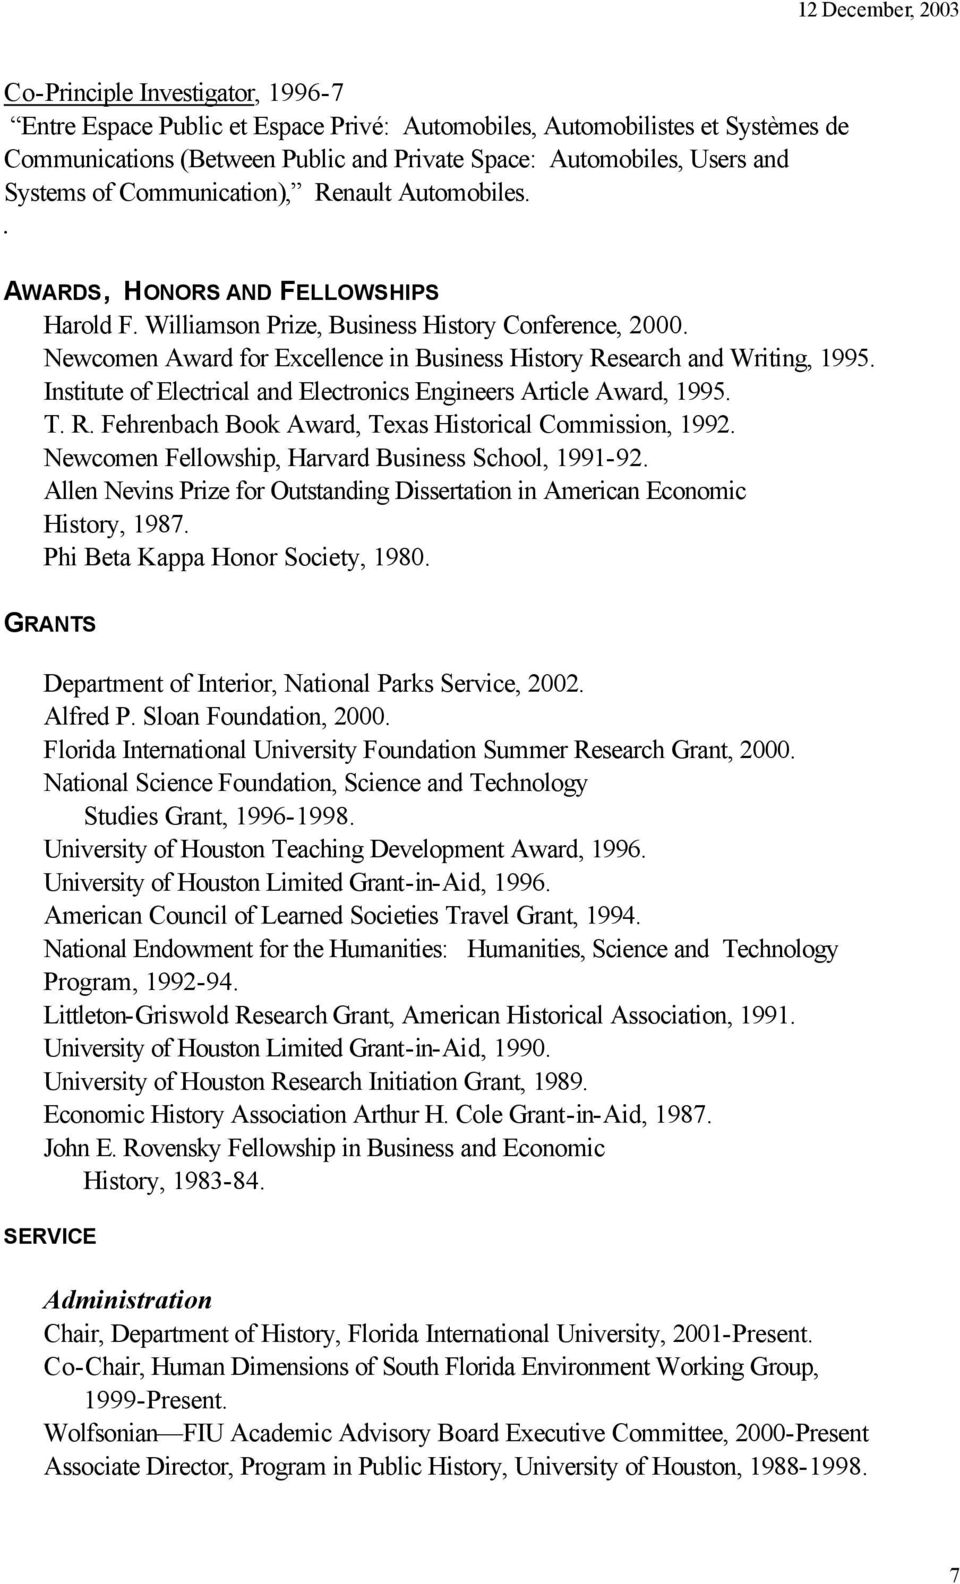 Newcomen Award for Excellence in Business History Research and Writing, 1995. Institute of Electrical and Electronics Engineers Article Award, 1995. T. R. Fehrenbach Book Award, Texas Historical Commission, 1992.